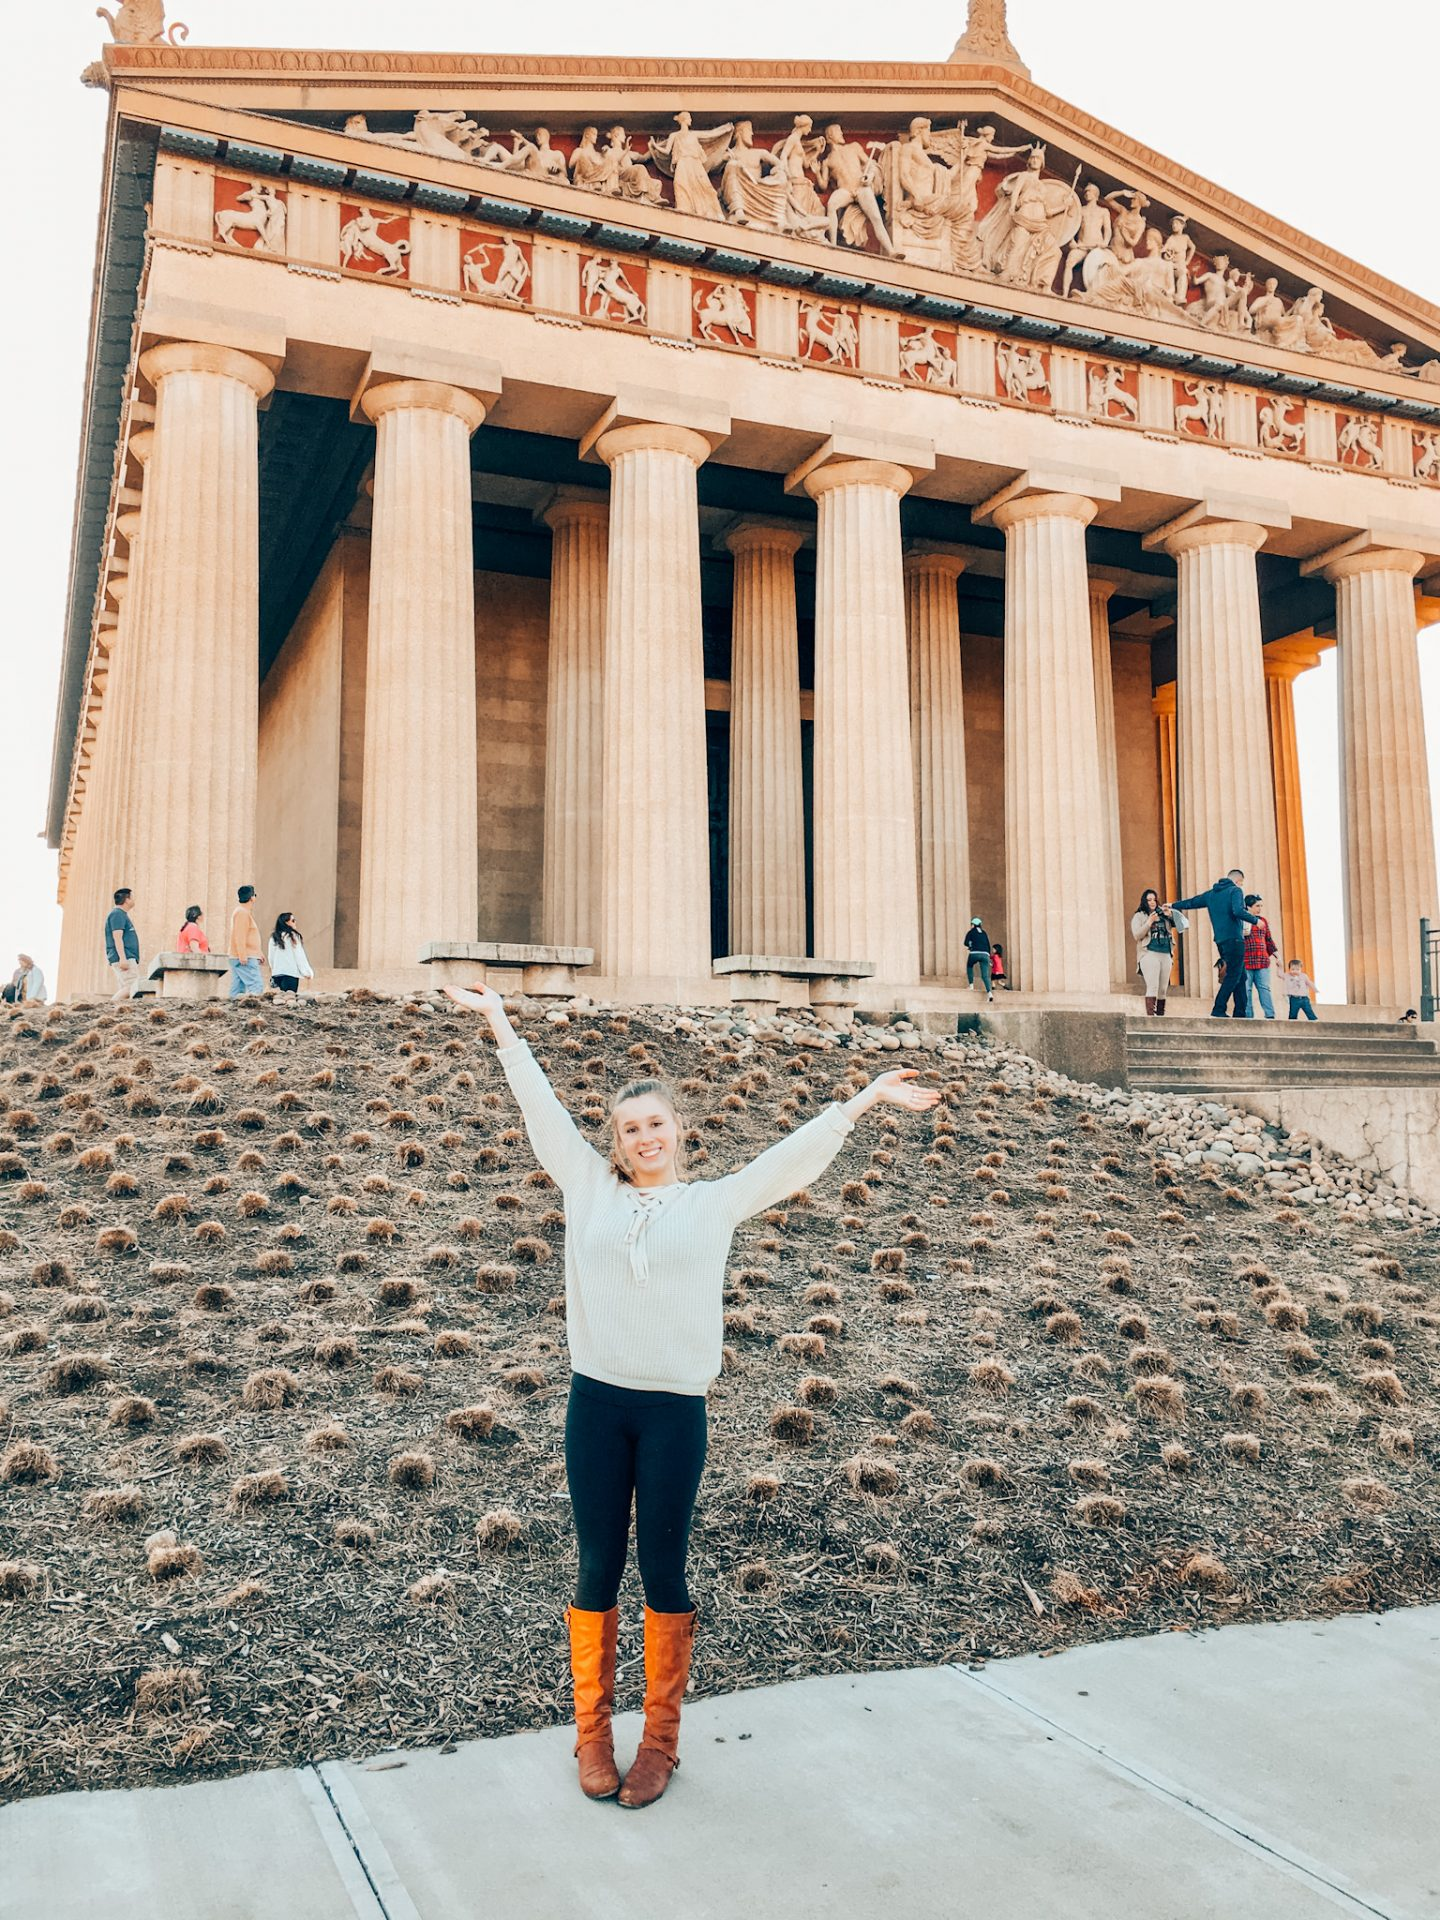 Posing in front of the Parthenon in Centennial Park in Nashville